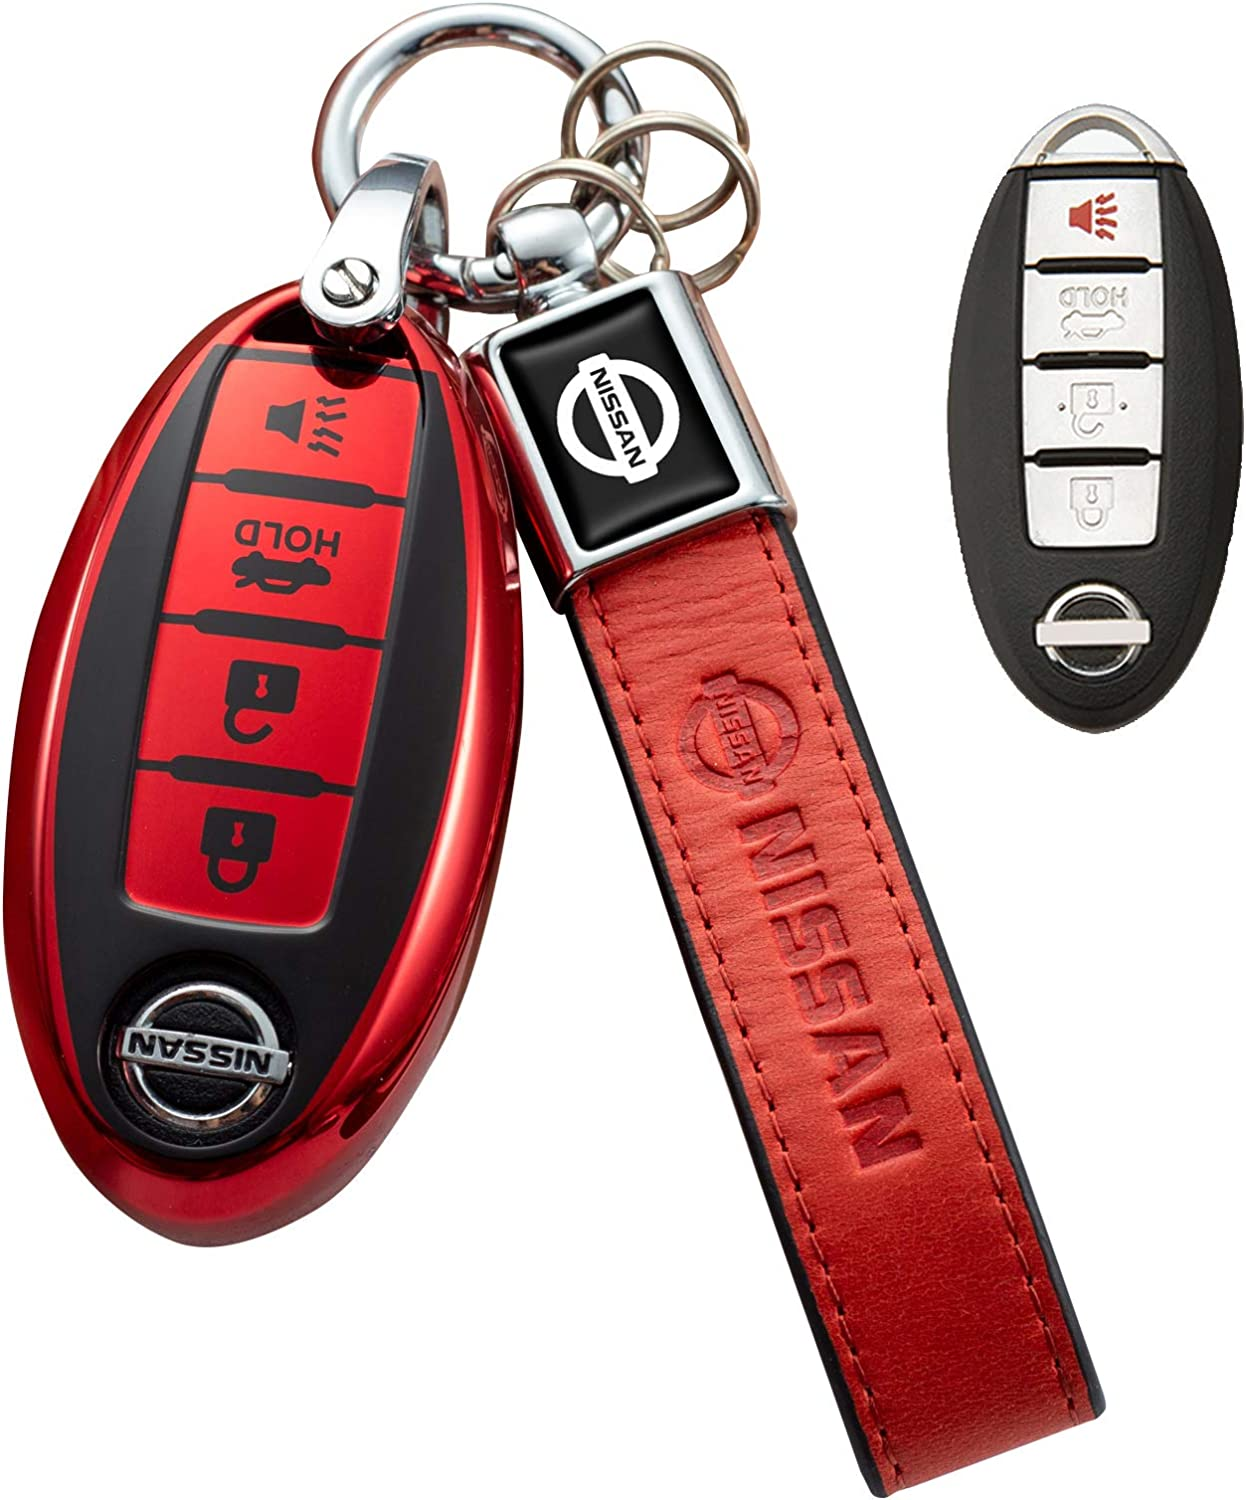 for Nissan Key Fob Cover,Key Fob Case for Nissan Altima Maxima Murano Rogue Sentra 370z Pathfinder Smart Remote Premium Soft TPU Nissan Key Cover 4 Button Pink